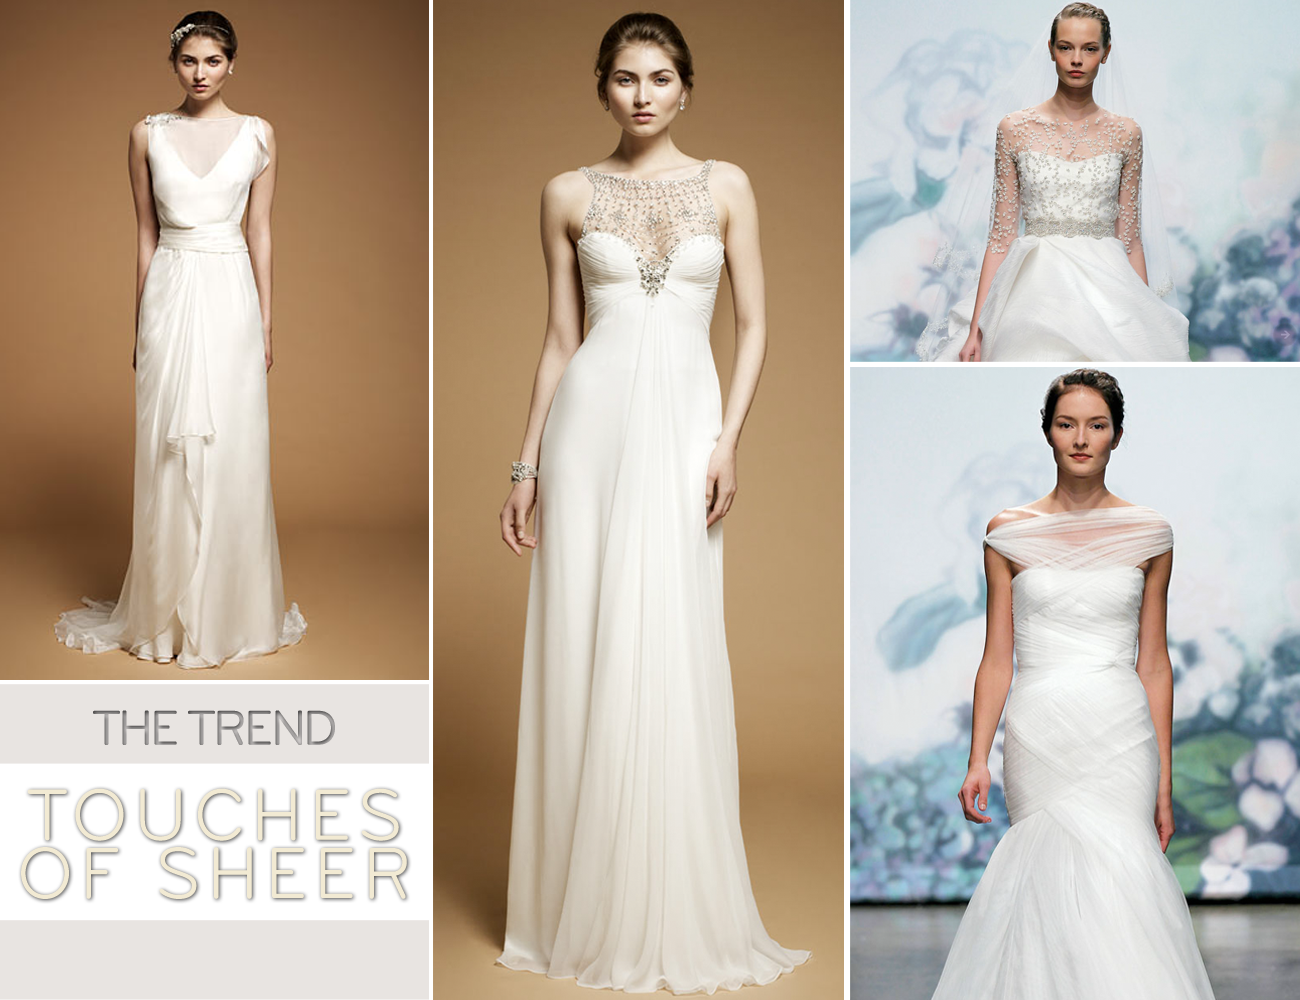 2012-wedding-dress-trends-sheer-illusion-necklines.original